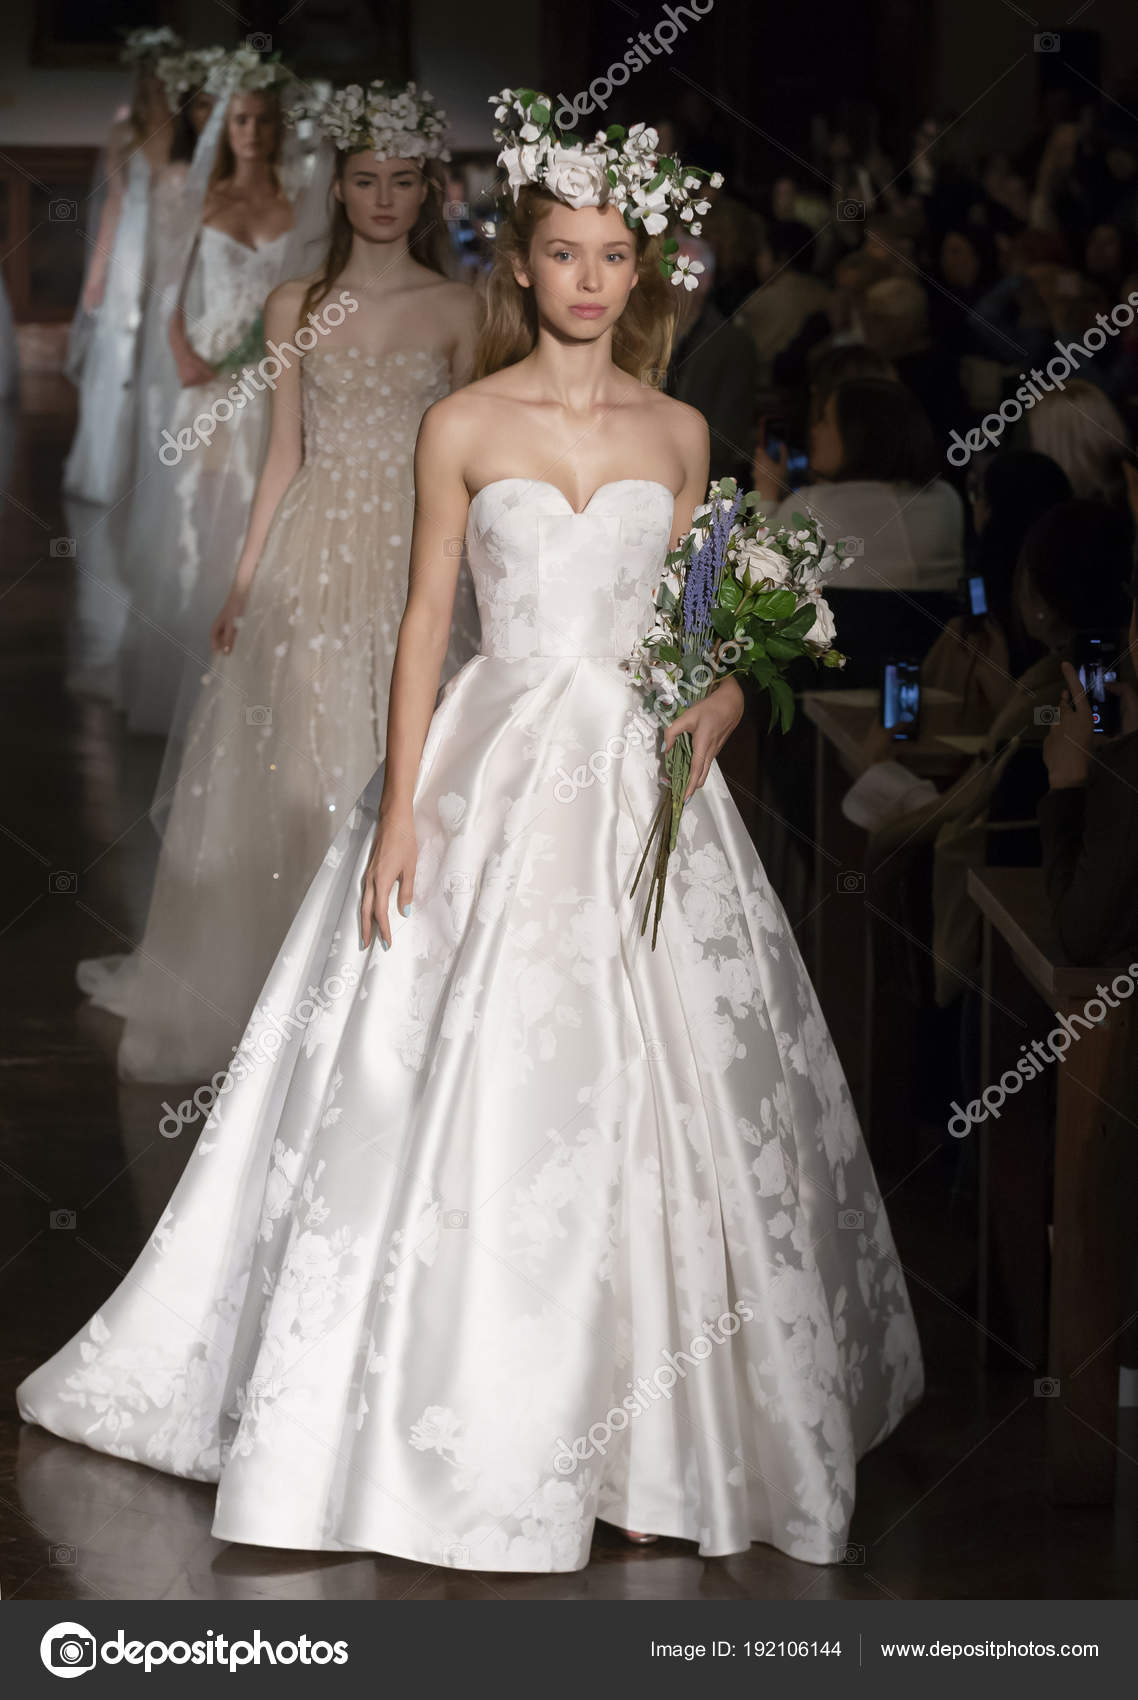 b010167f2c50 NEW YORK, NY - April 12, 2018: Models walk the runway at the Reem Acra  Bridal Spring 2019 Collection Runway Show during NY Fashion Week Bridal —  Photo by ...